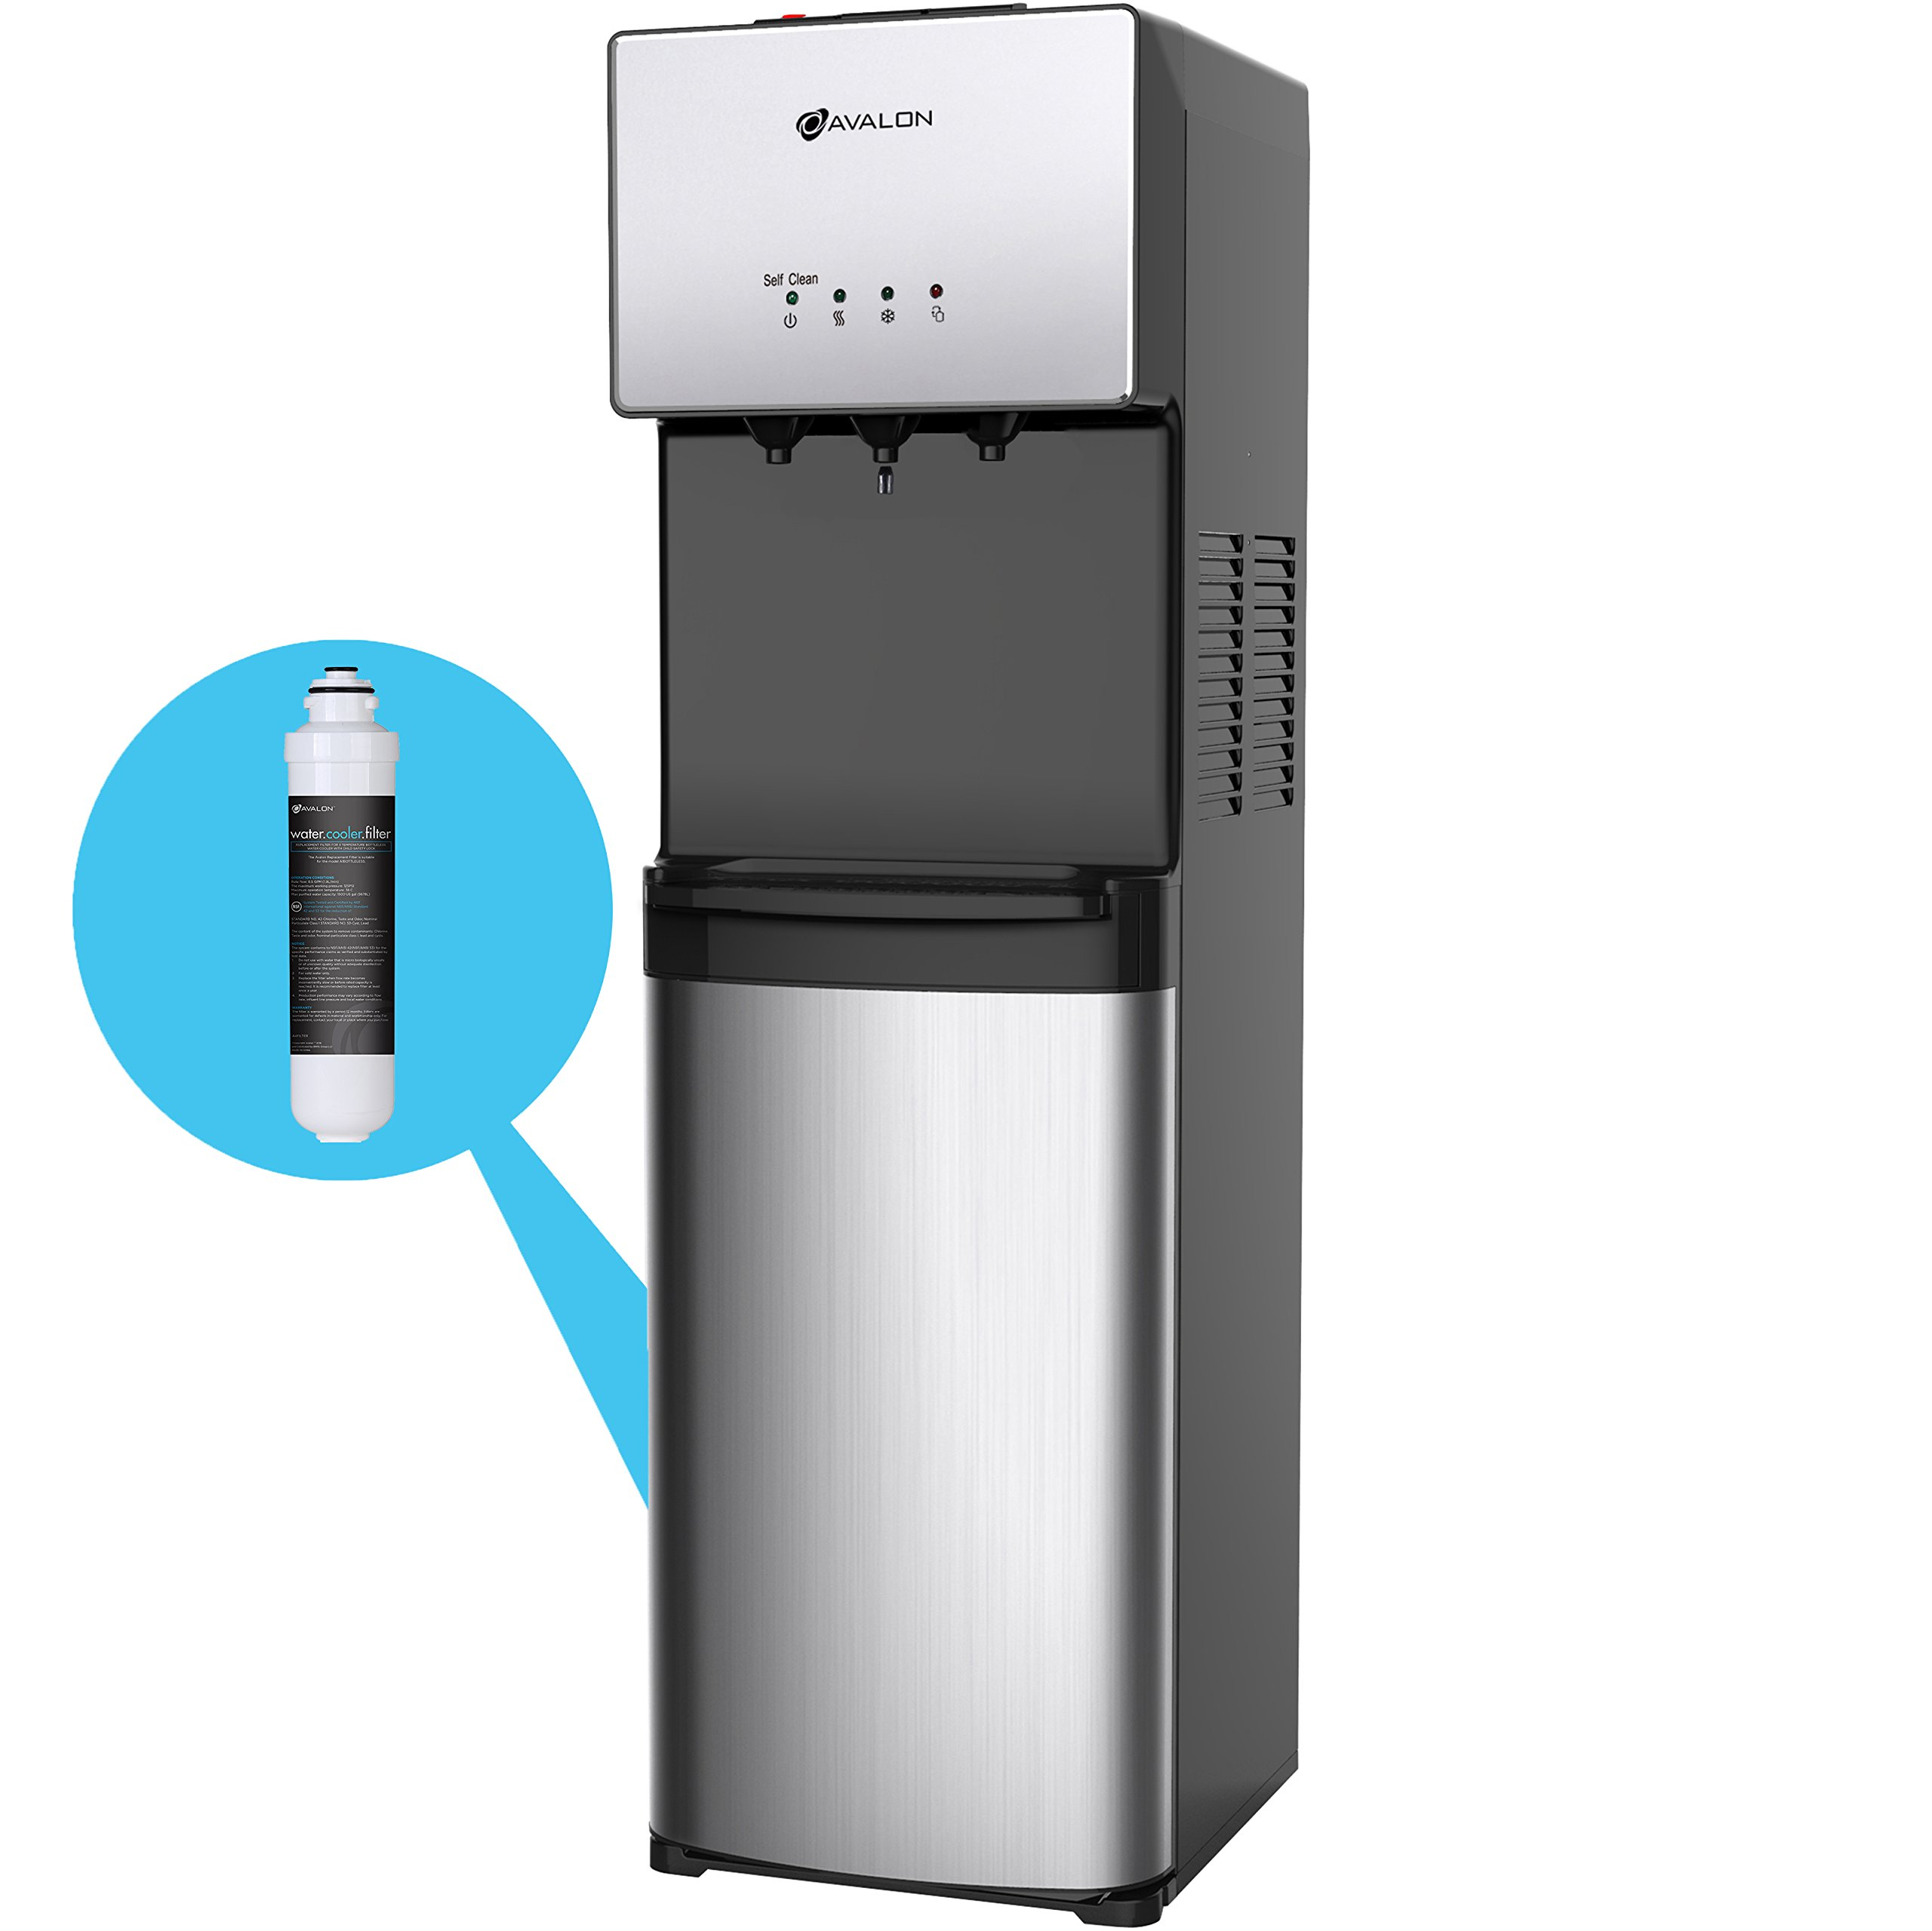 Avalon Commercial Grade Self Cleaning Bottleless Water Cooler Dispenser-3 Temperature Settings Hot, Cold & Room Water, Durable Stainless Steel Construction, - UL/Energy Star Approved